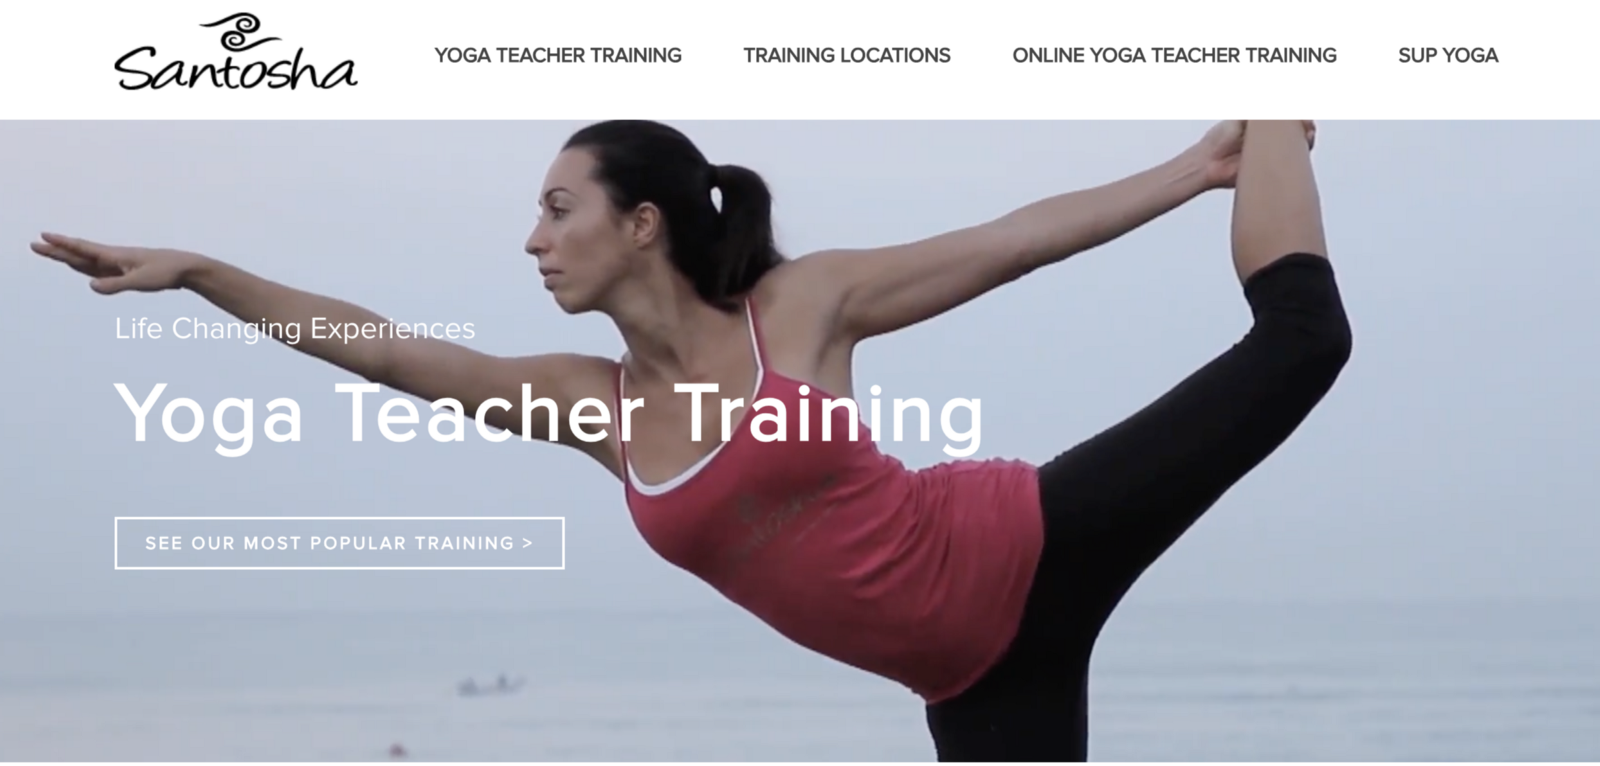 Yoga Teacher Training Online The Future Santosha Yoga Medium